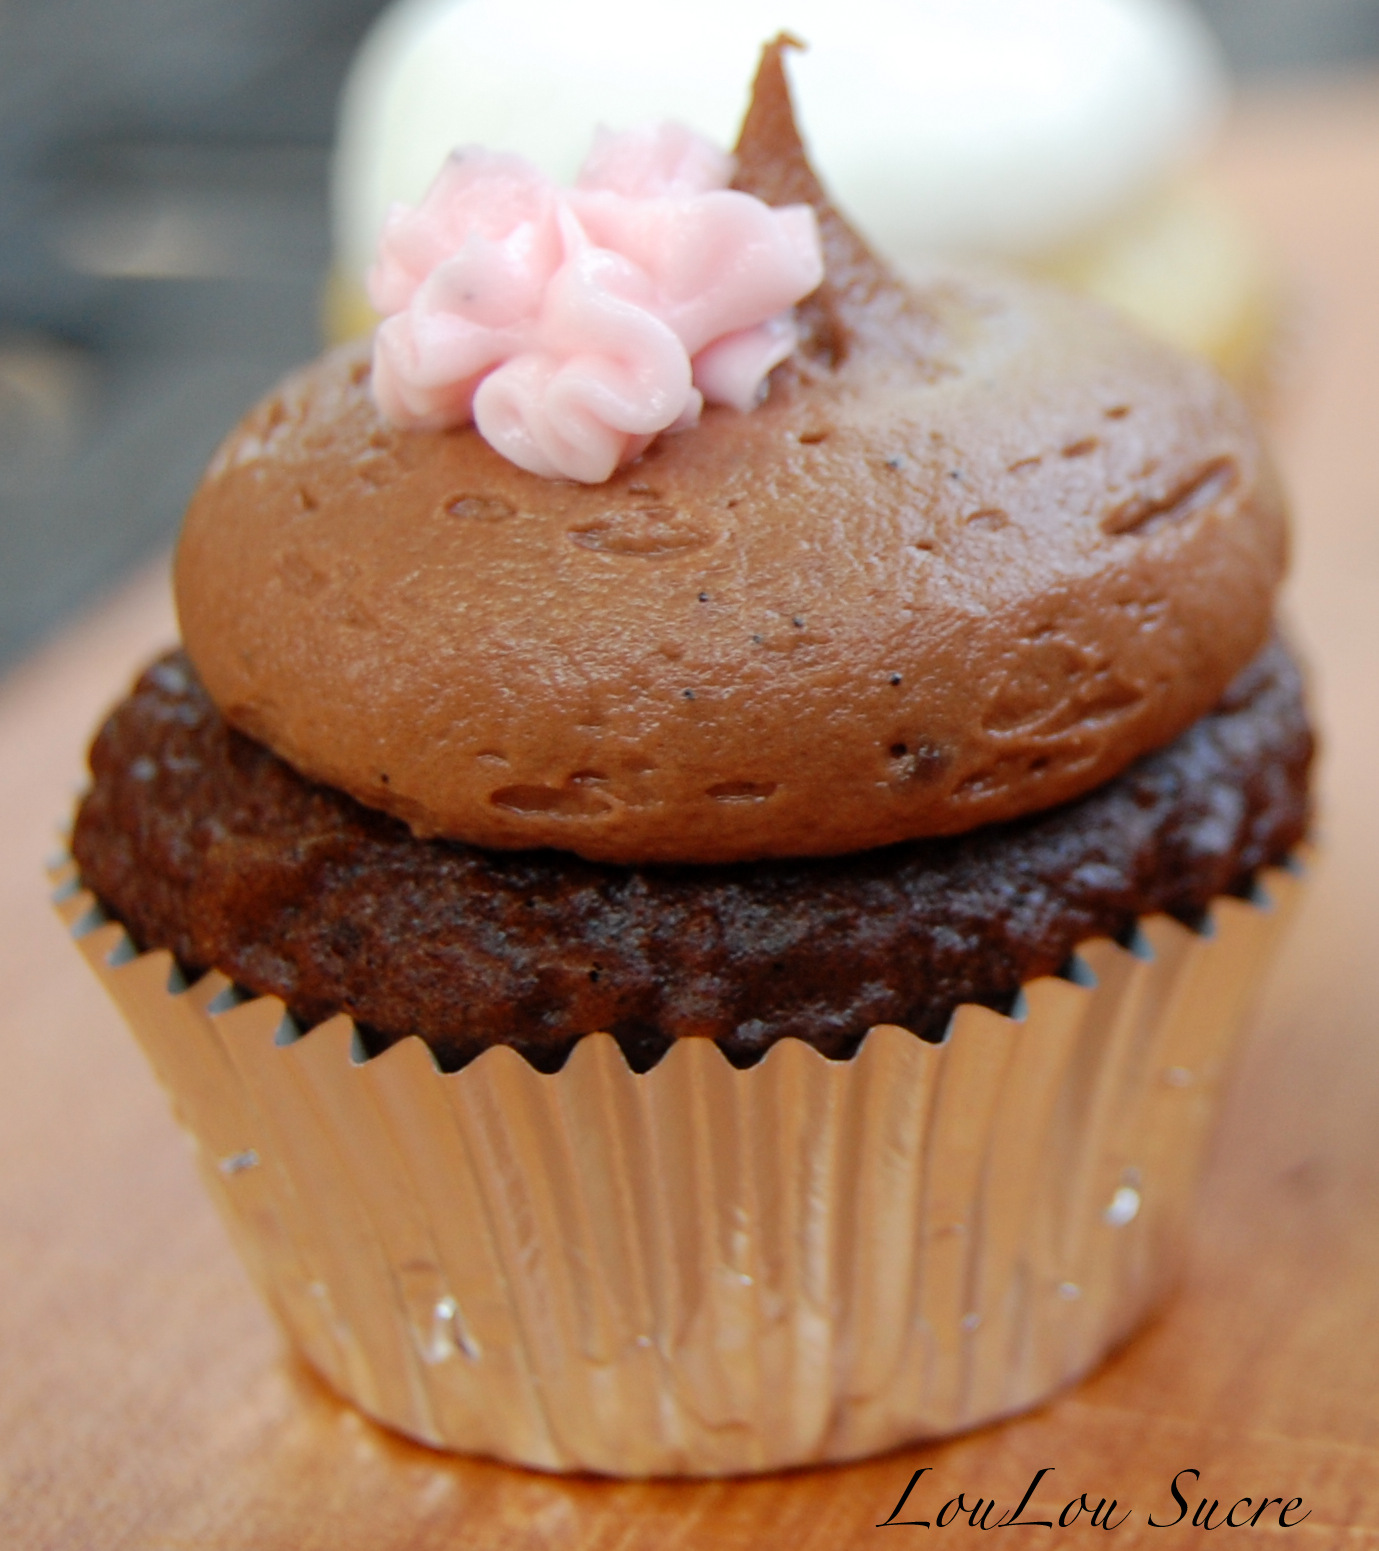 Chocolate Fudge Cupcakes with Chocolate Buttercream Frosting